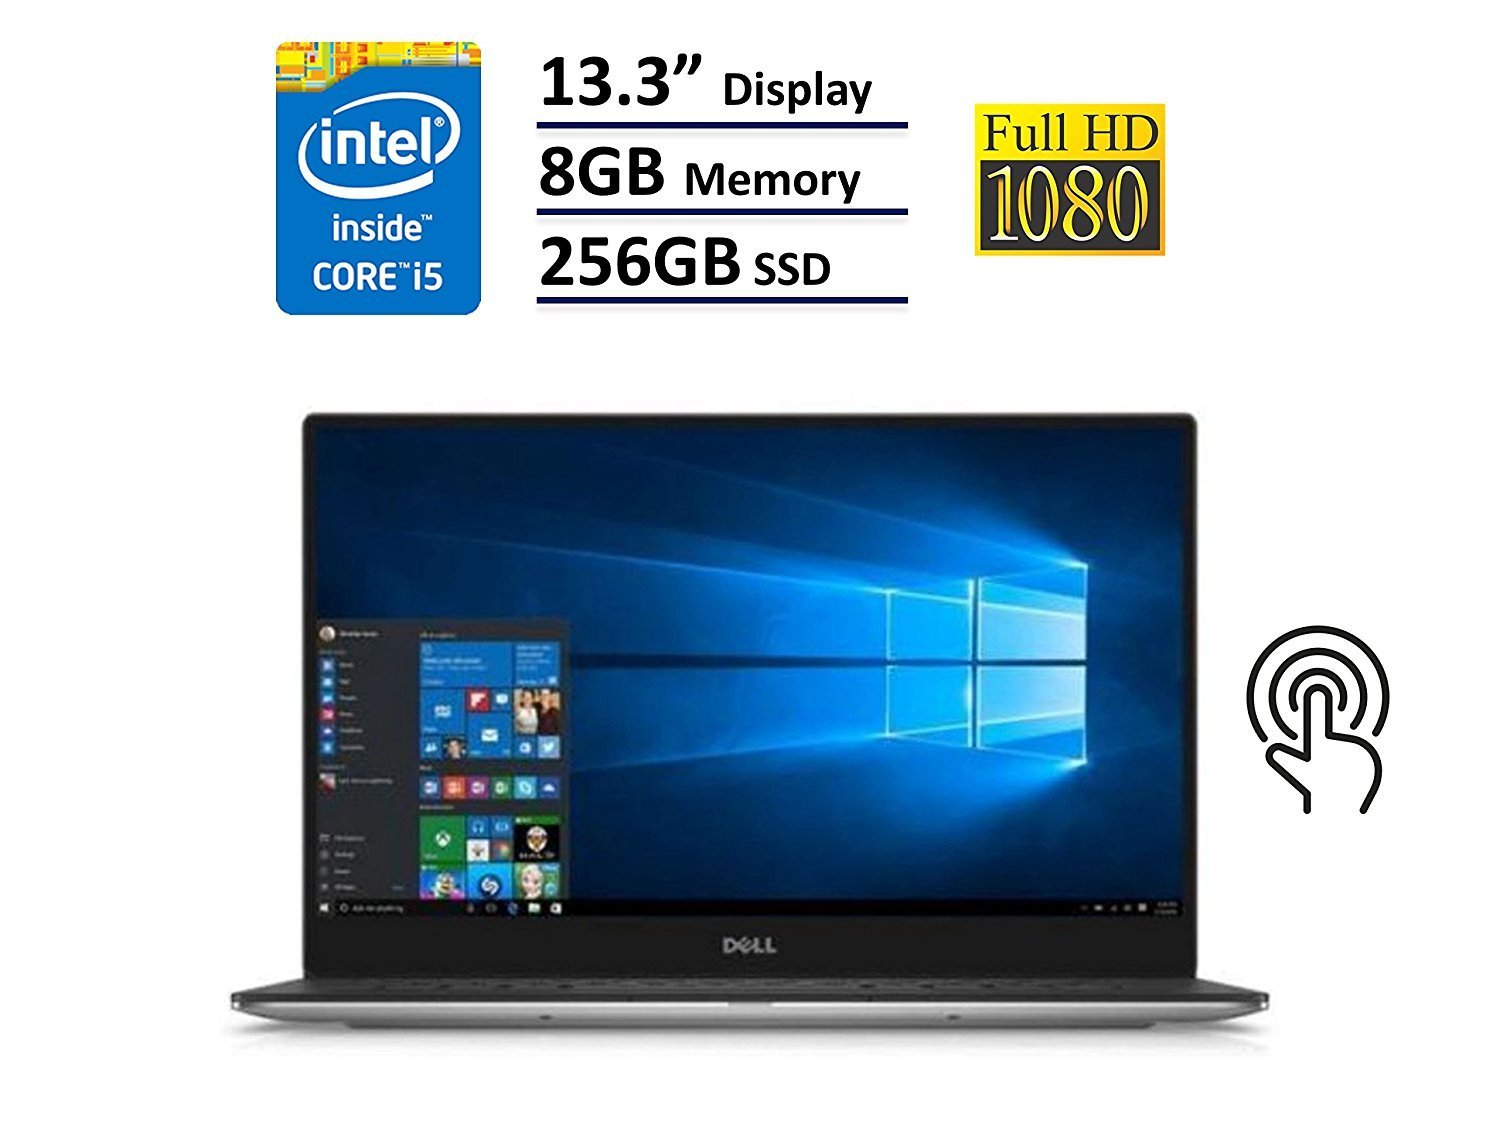 Amazon.com: Dell XPS 13.3